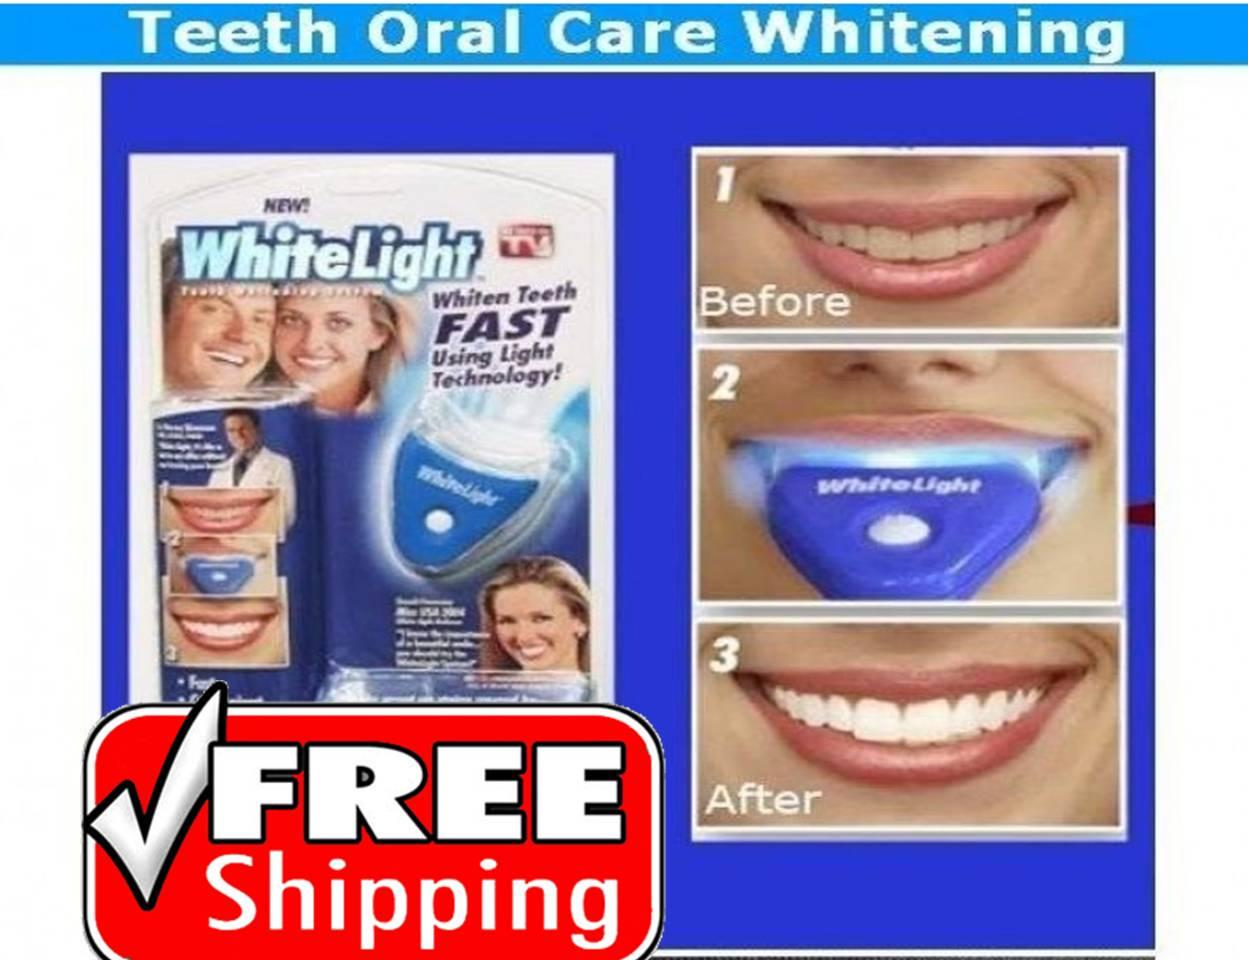 free shipping white light teeth whitening system oral care selangor. Black Bedroom Furniture Sets. Home Design Ideas